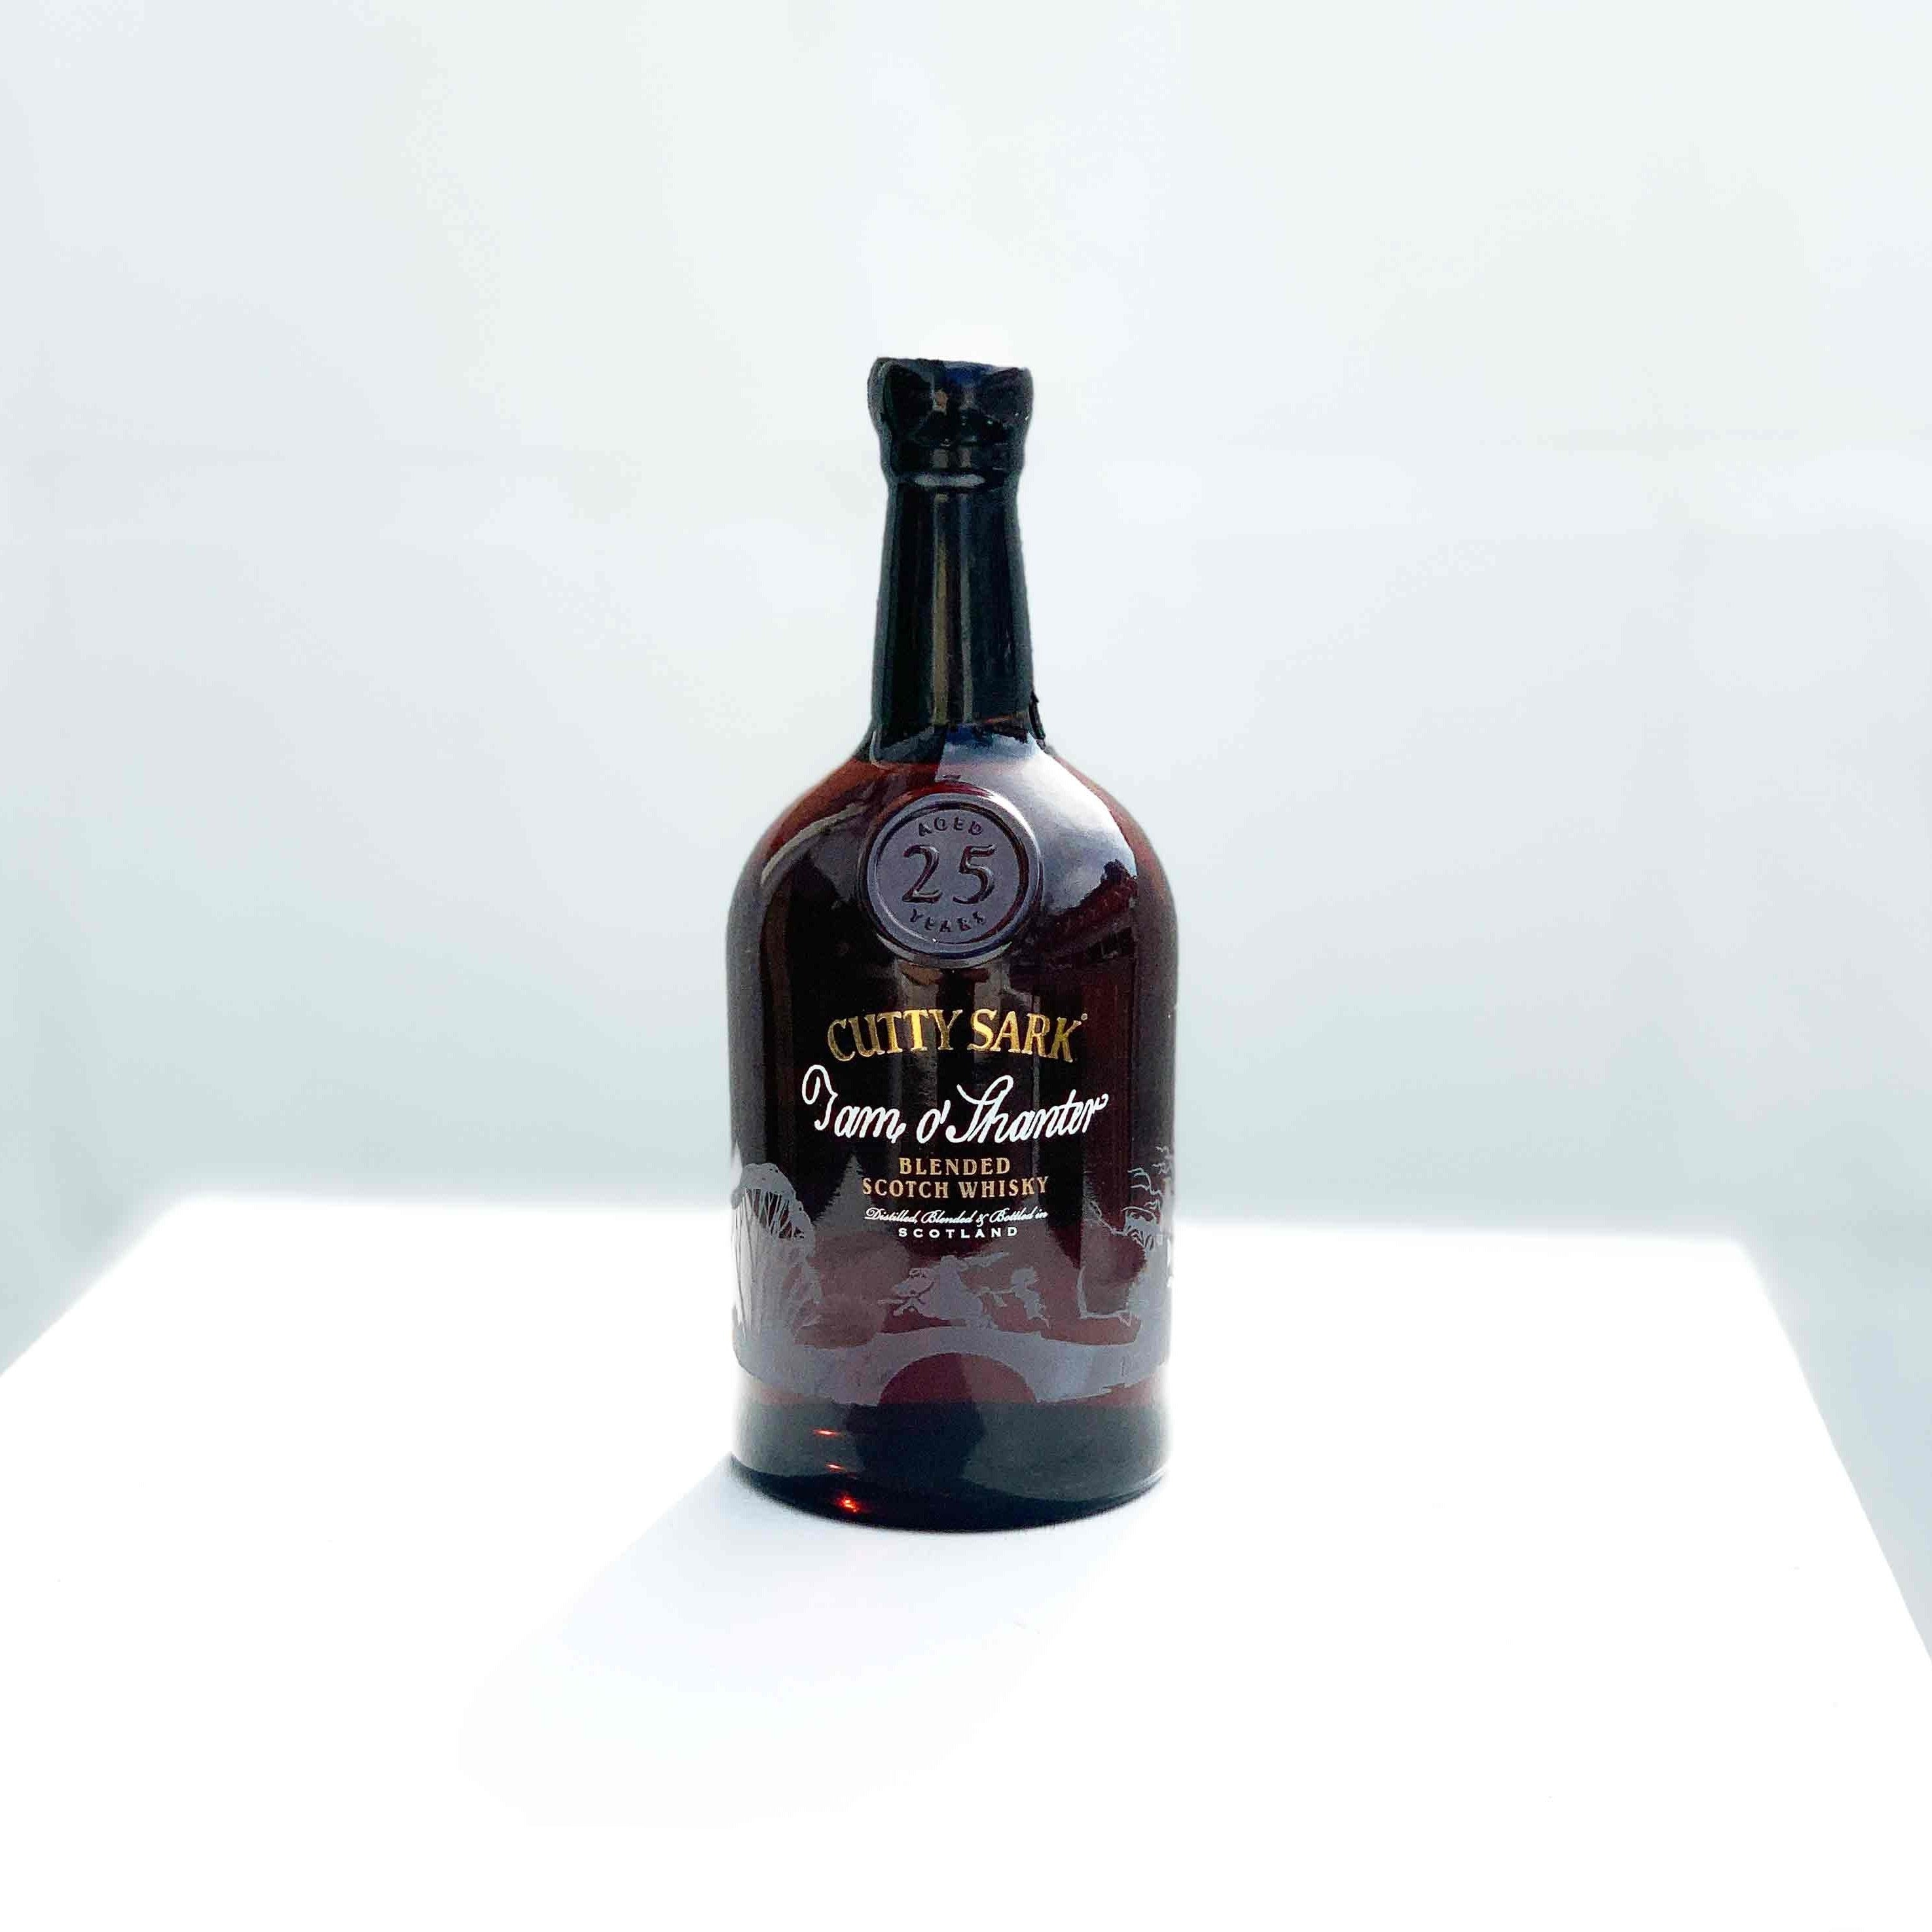 Cutty Sark 25 Year Old Tam o'Shanter Edition Blended Scotch Whisky